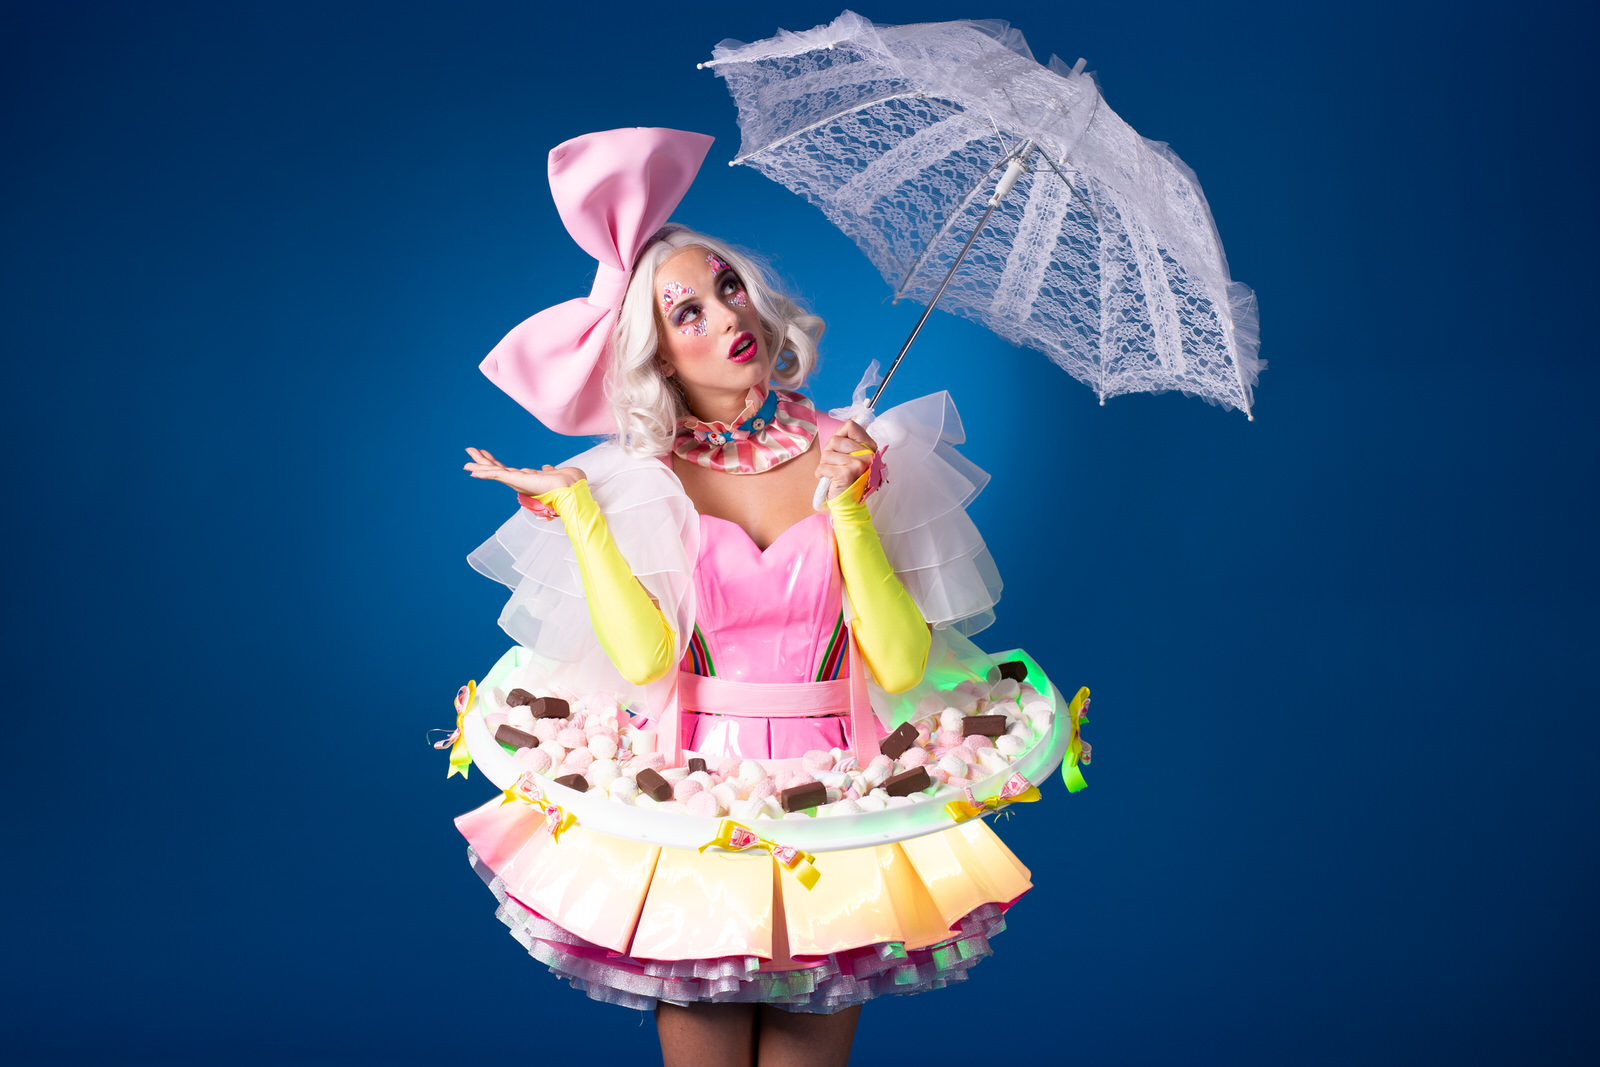 Crazy Candy Girl,zoete candy dameCandy Girls, Sweets and Candy, Tomorrowland, festival fotografie, polaroid act, polaroid dames, polaroid meisjes, Katy Perry candy Girls, Willy Wonka.